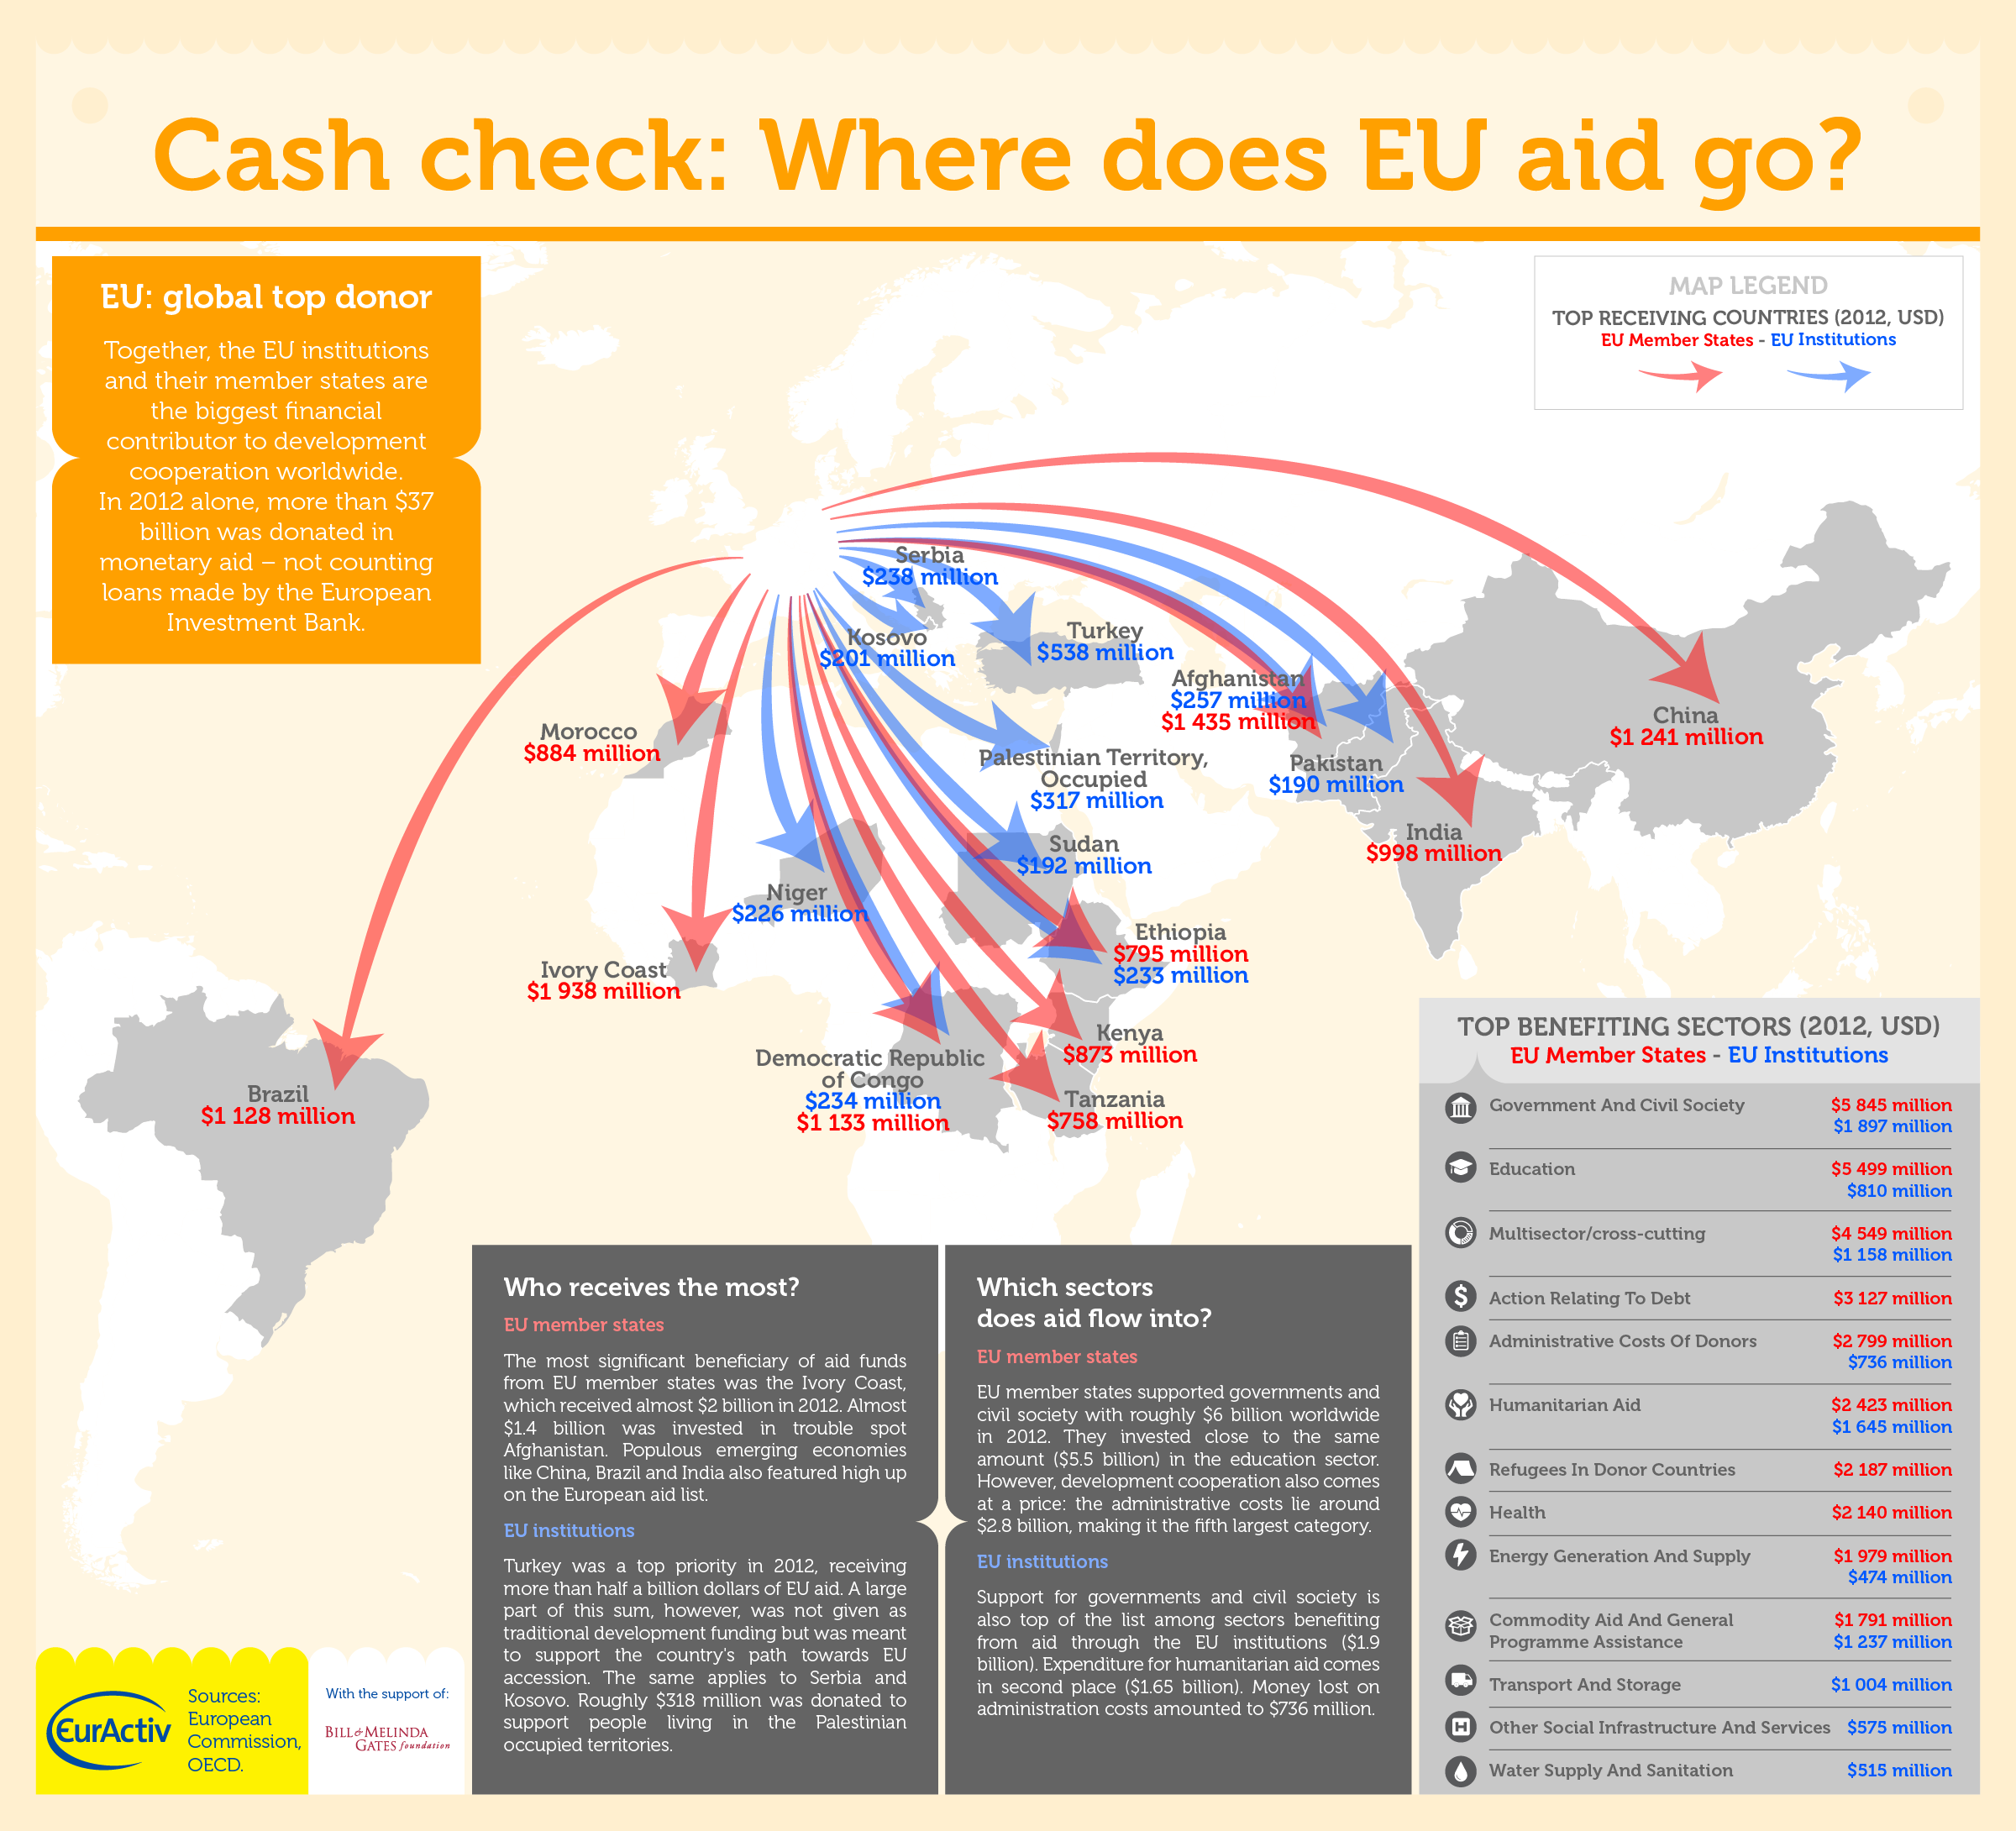 Cash check: Where does EU aid go?